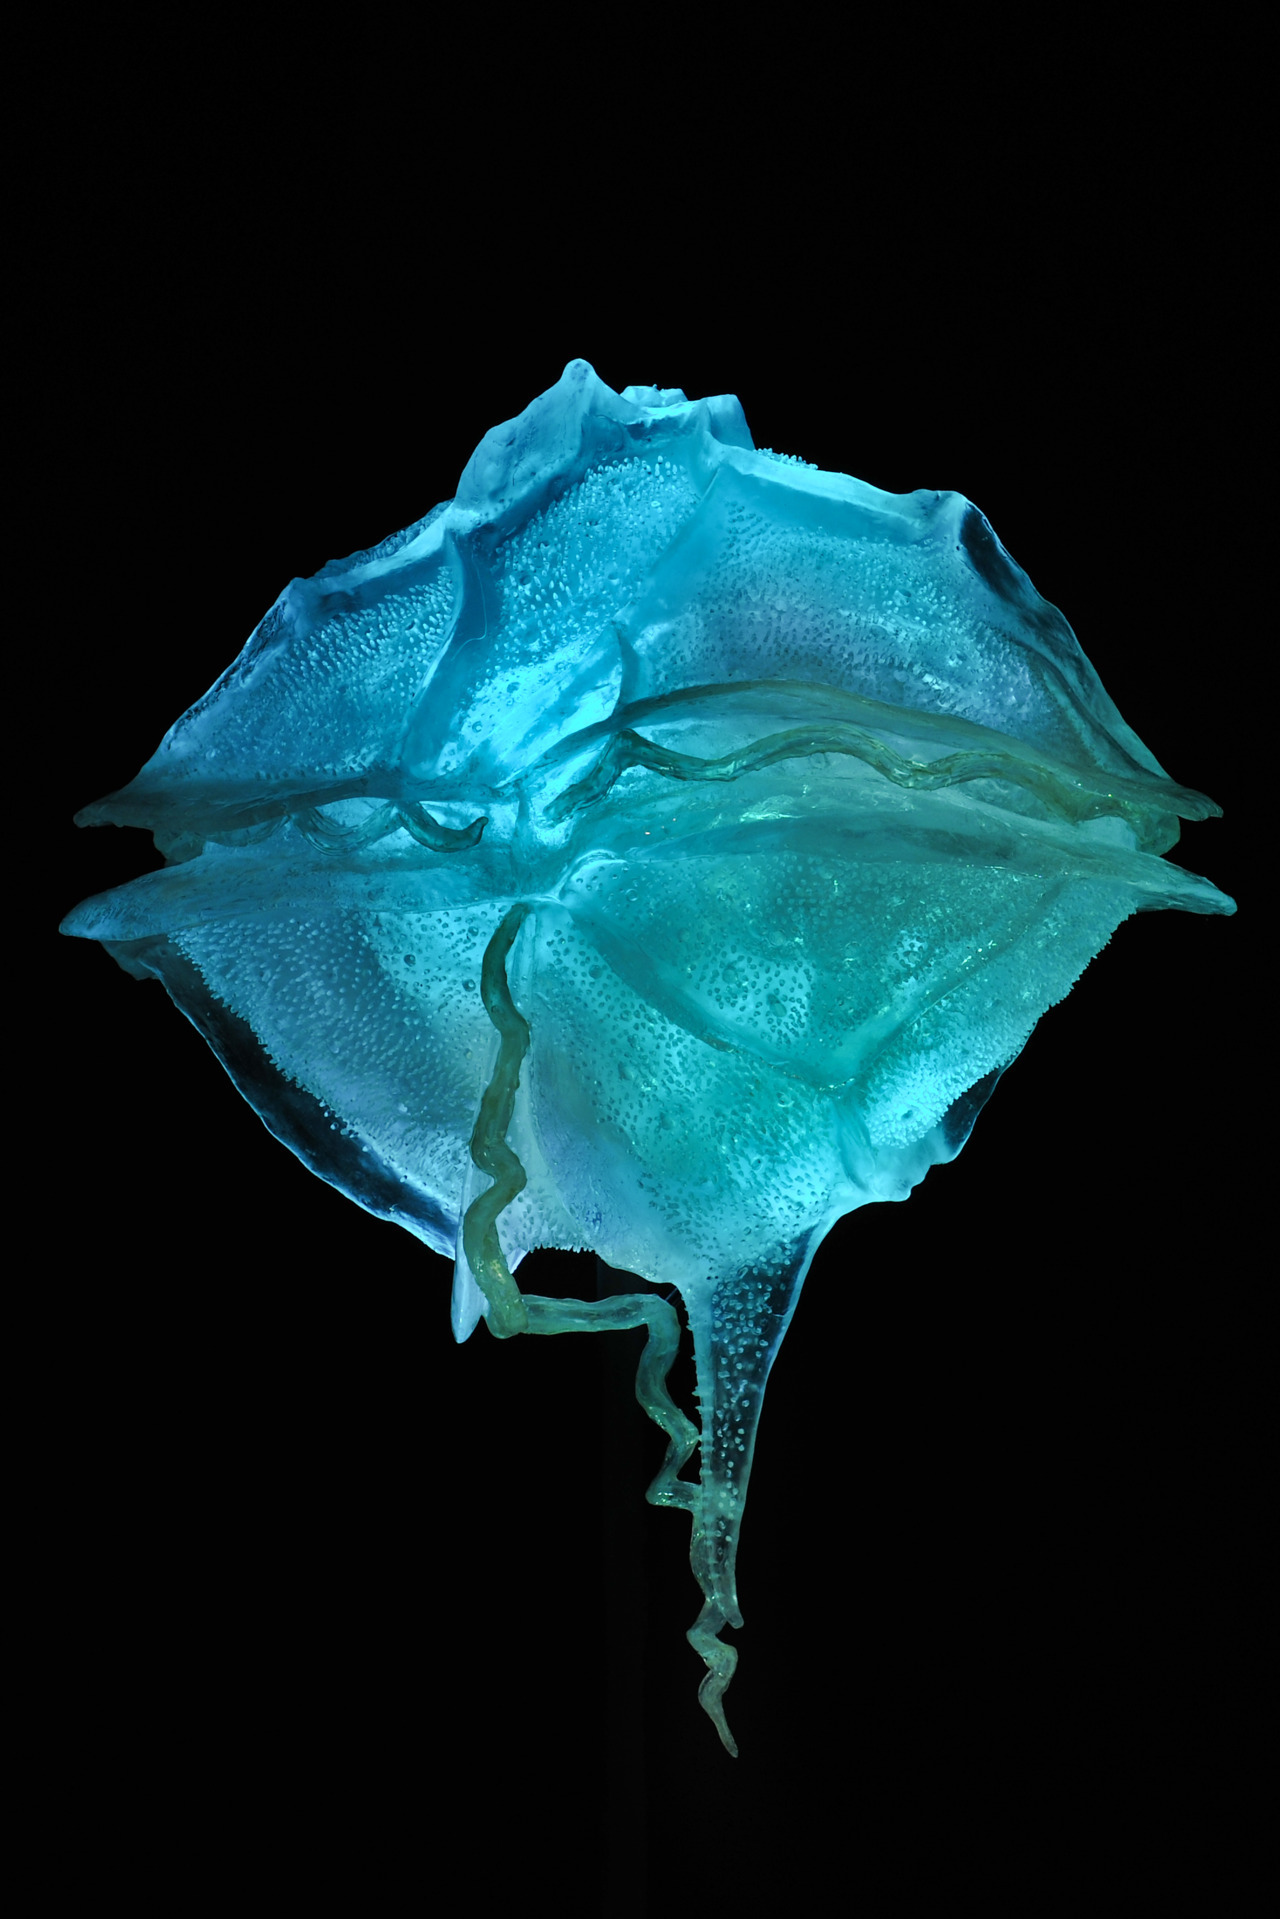 amnhnyc:  Dinoflagellates are single-celled organisms that live in lakes, rivers, and oceans. Some species that live in the ocean flash on contact. This dinoflagellate model (11,000 times life size!) can be seen in Creatures of Light.  Photo by Denis